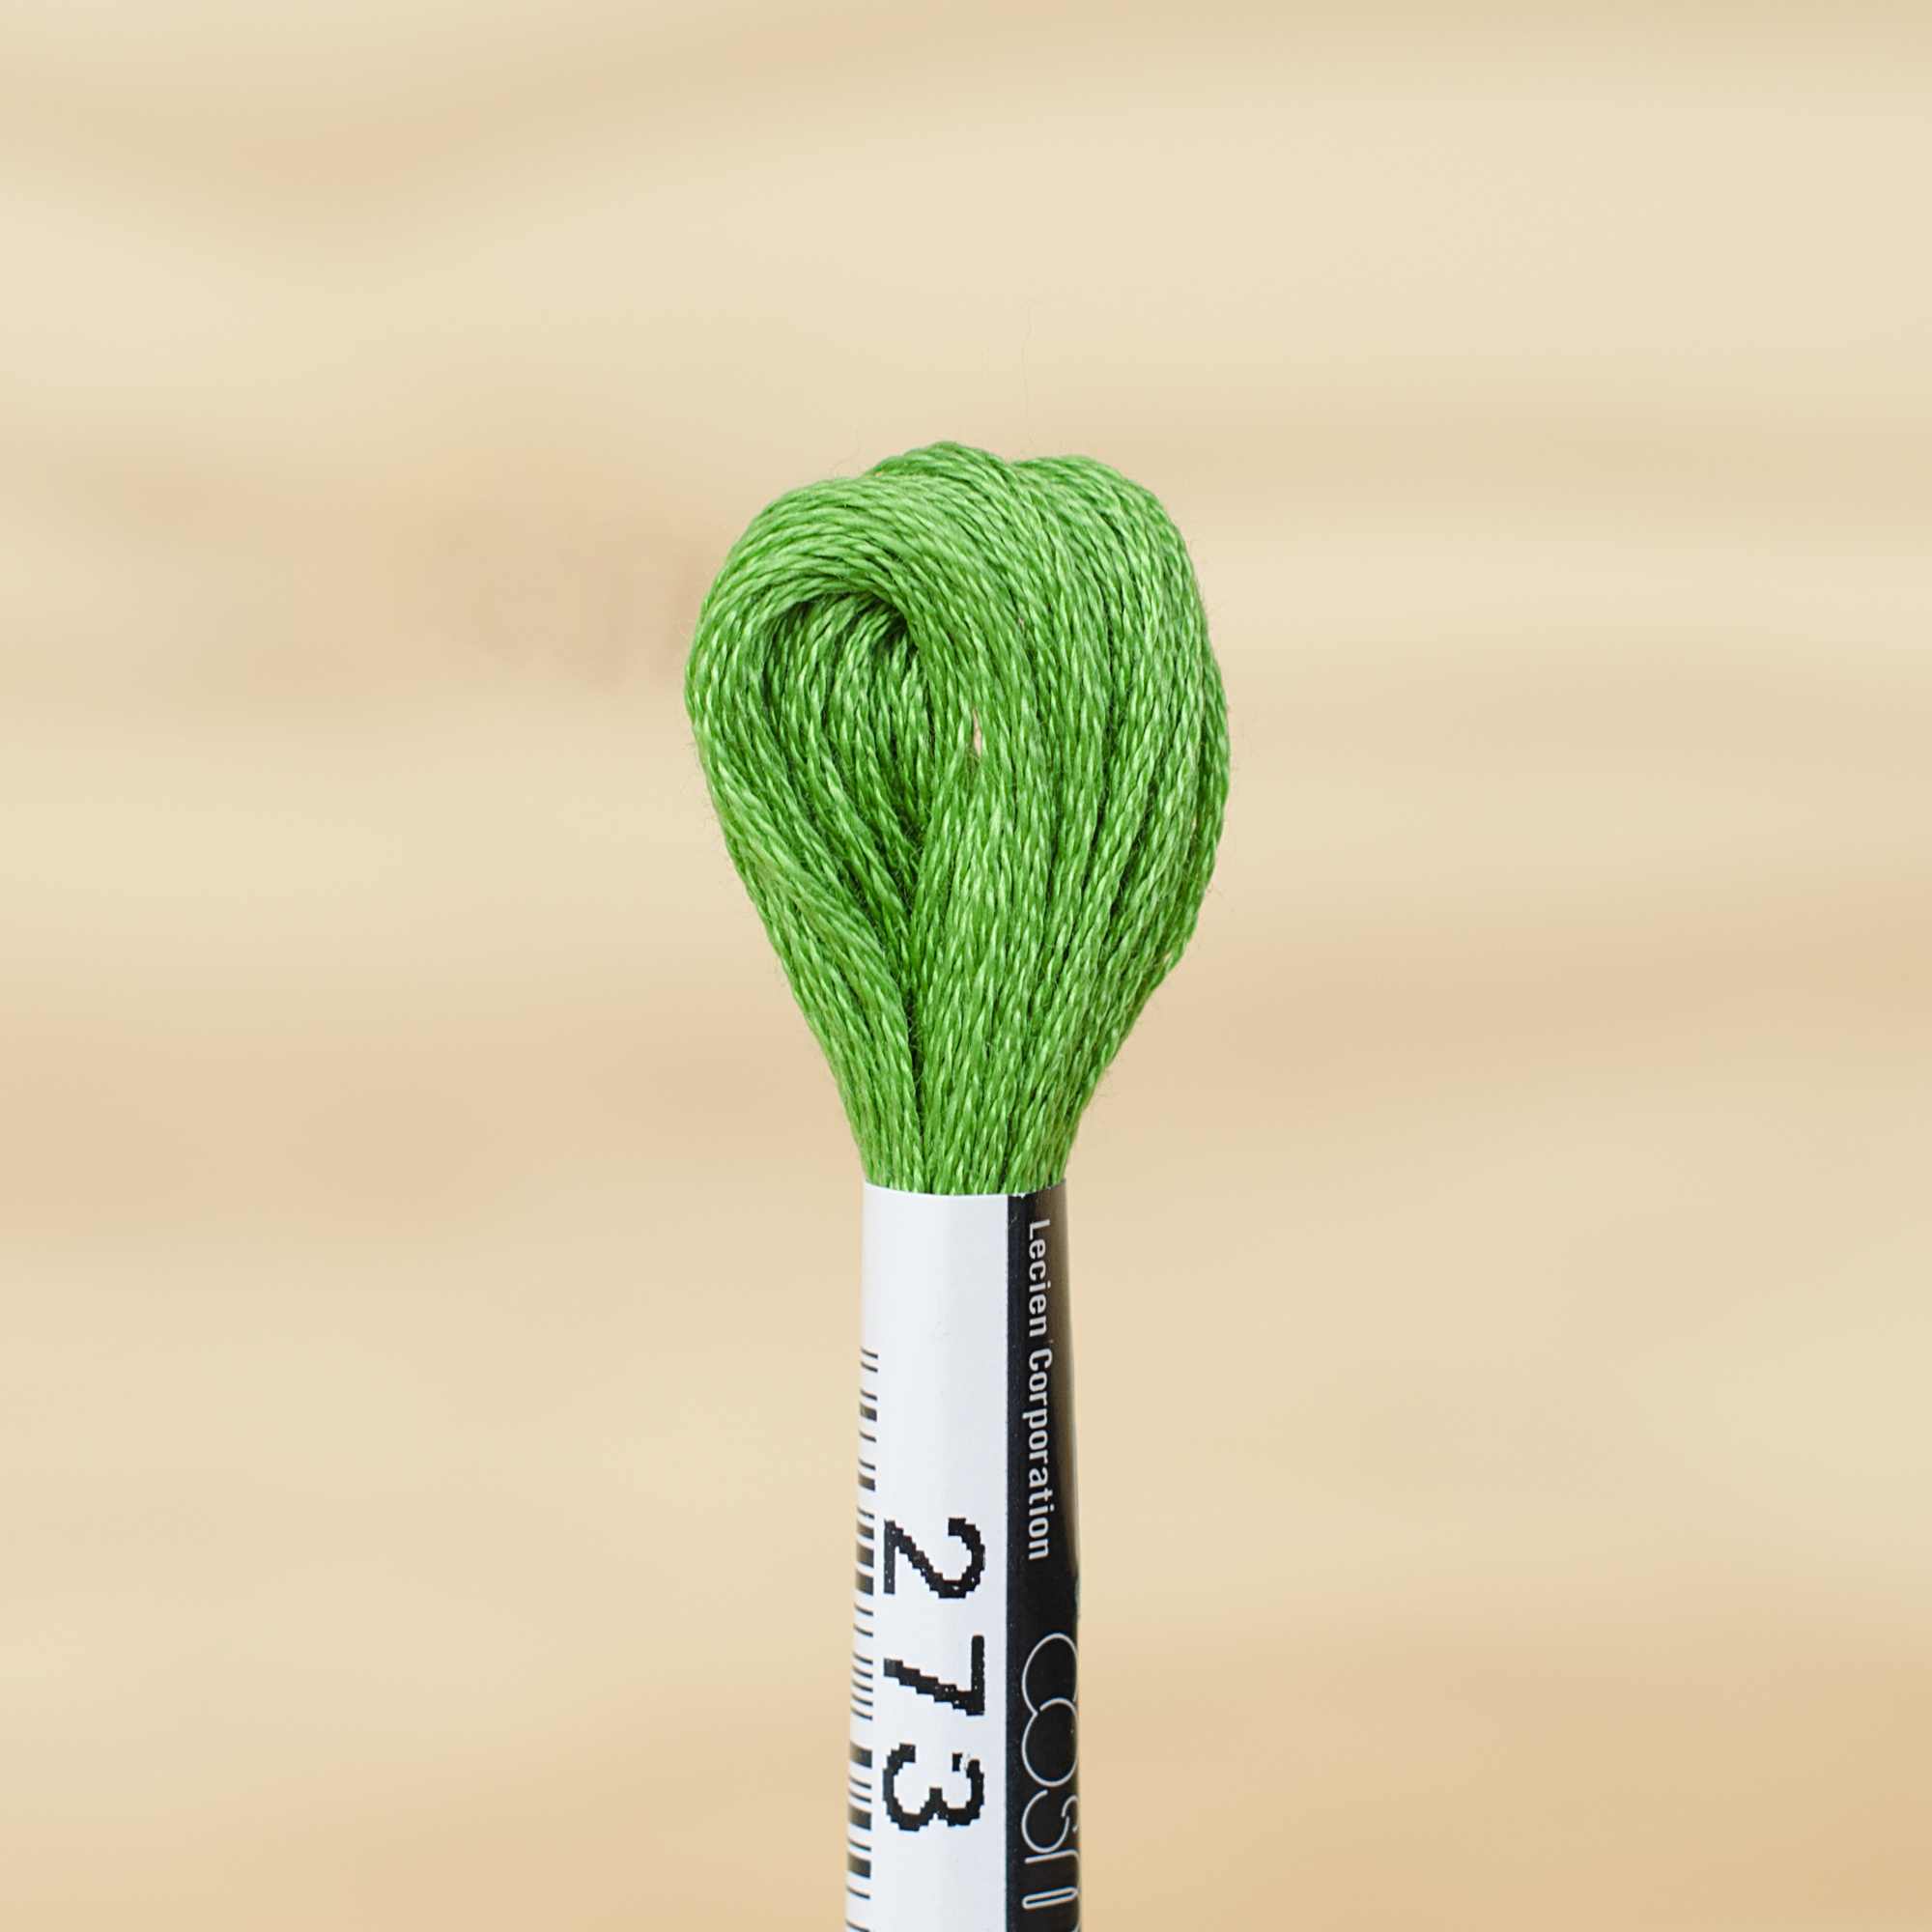 Cosmo Cotton Embroidery Floss : 8m skein : 273